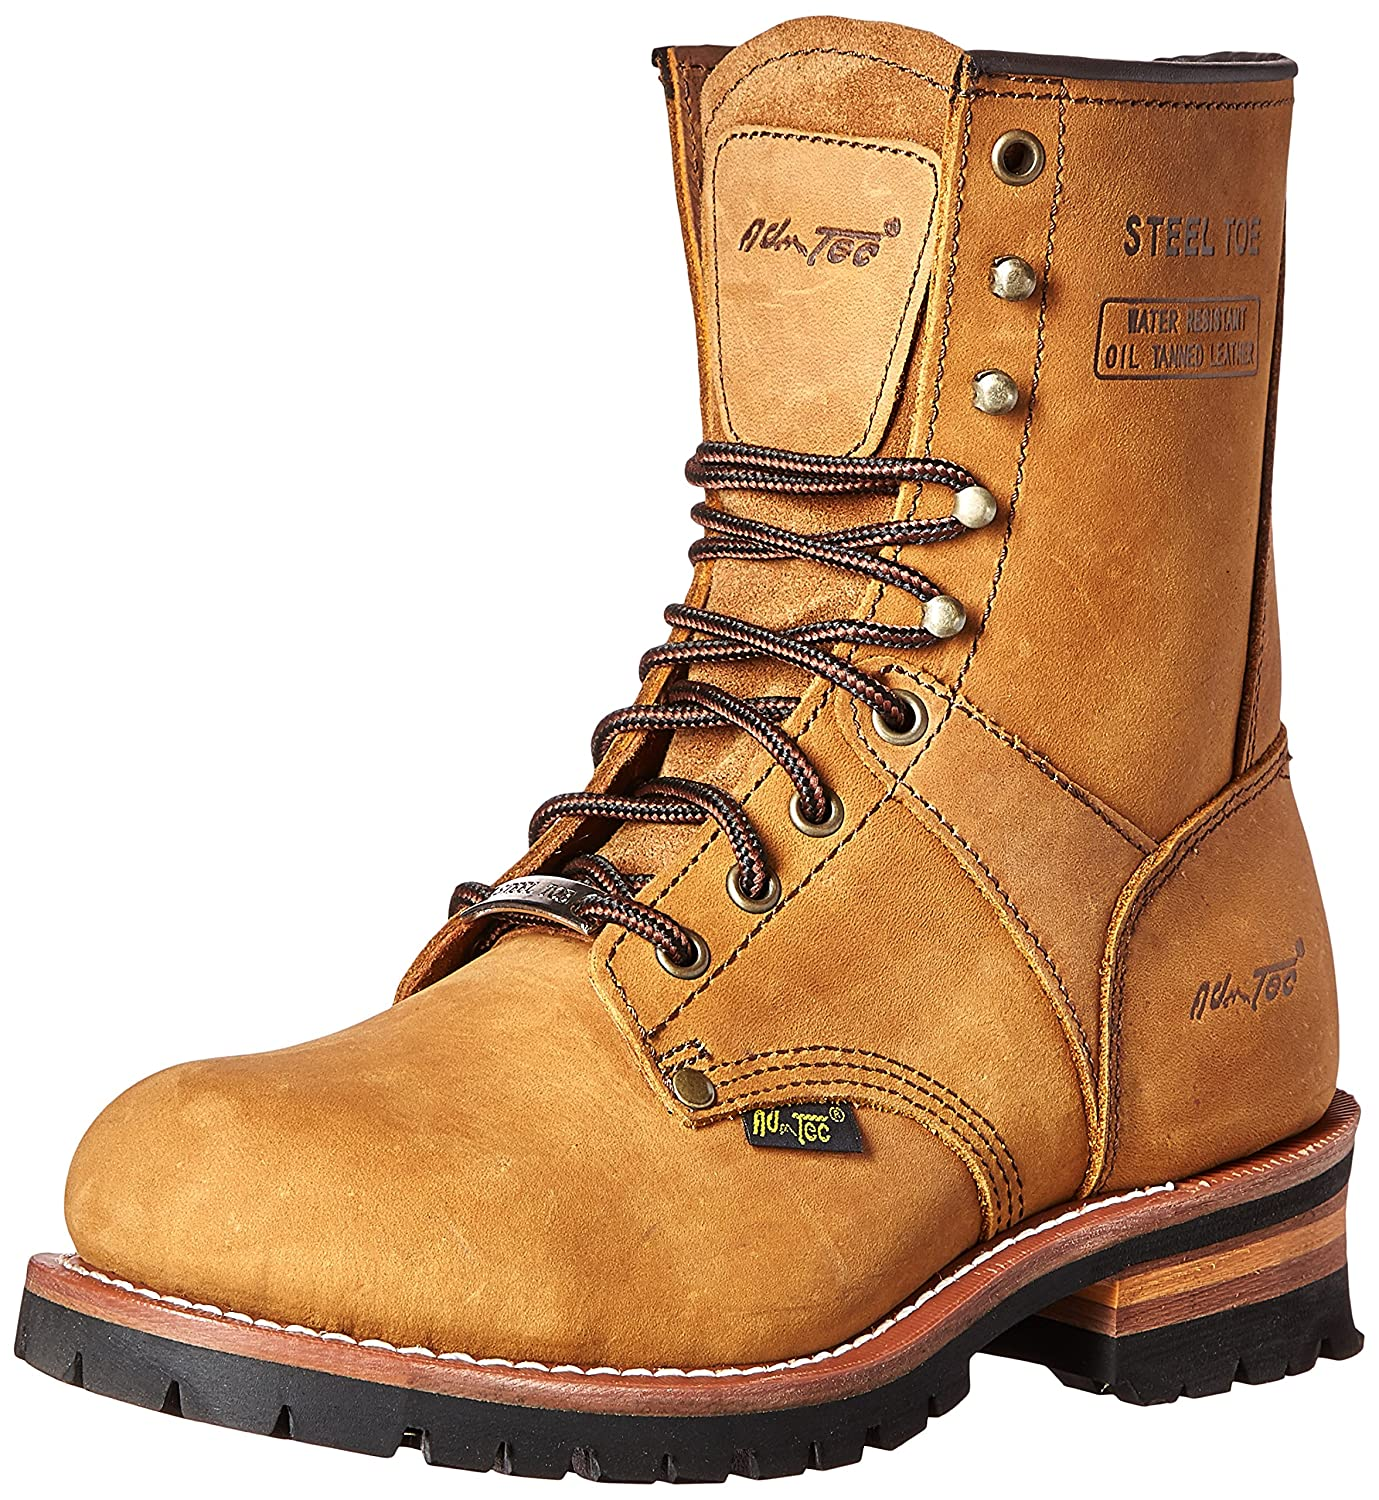 AdTec Men's 9 Inch Steel Toe Logger Boot, Brown, 10 M US B003QYAPGQ